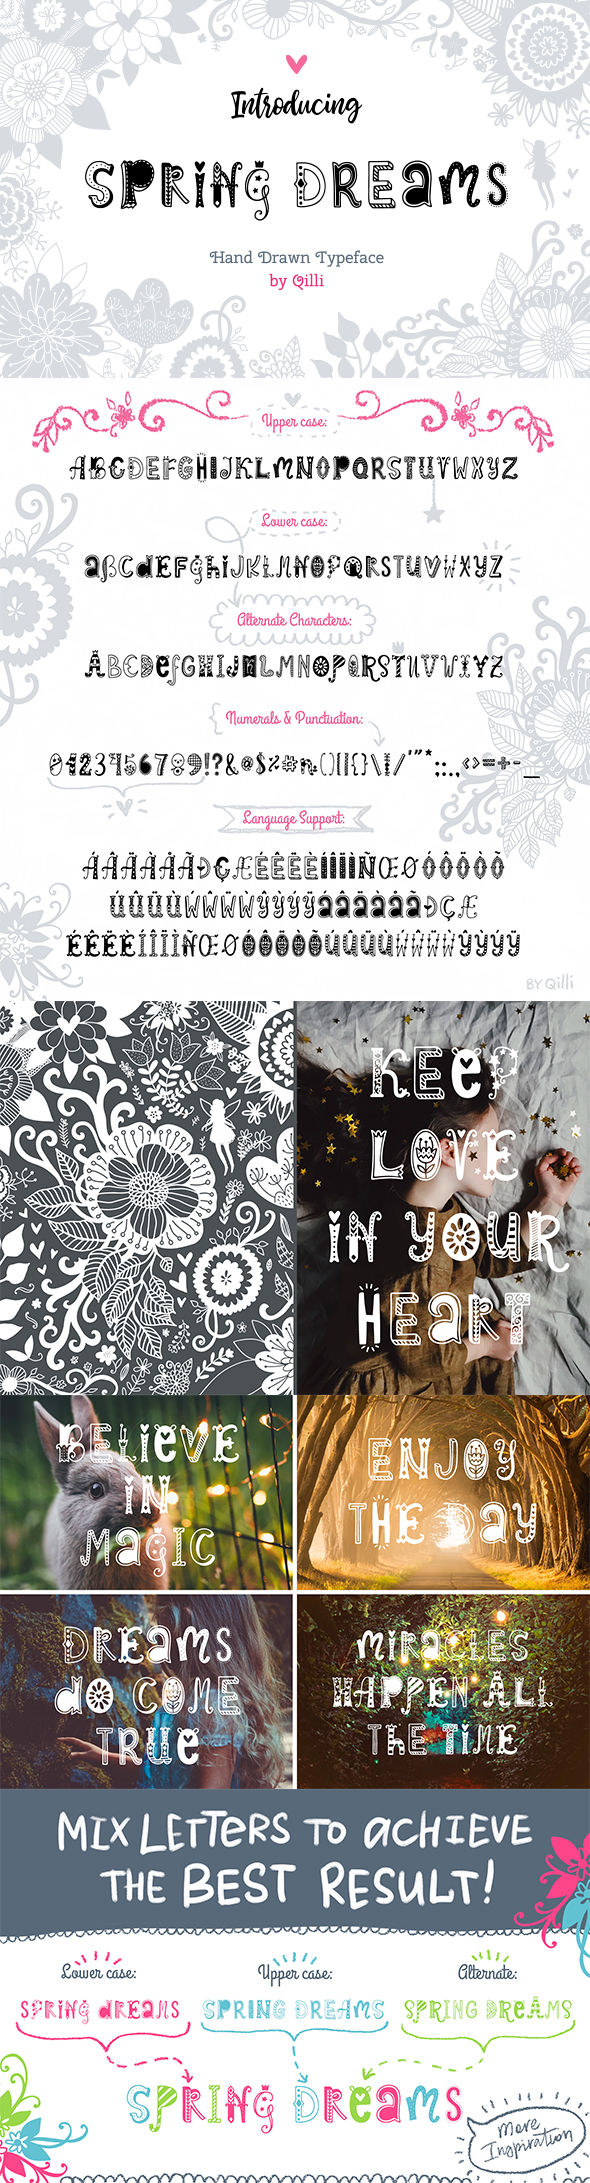 Spring Dreams Typeface